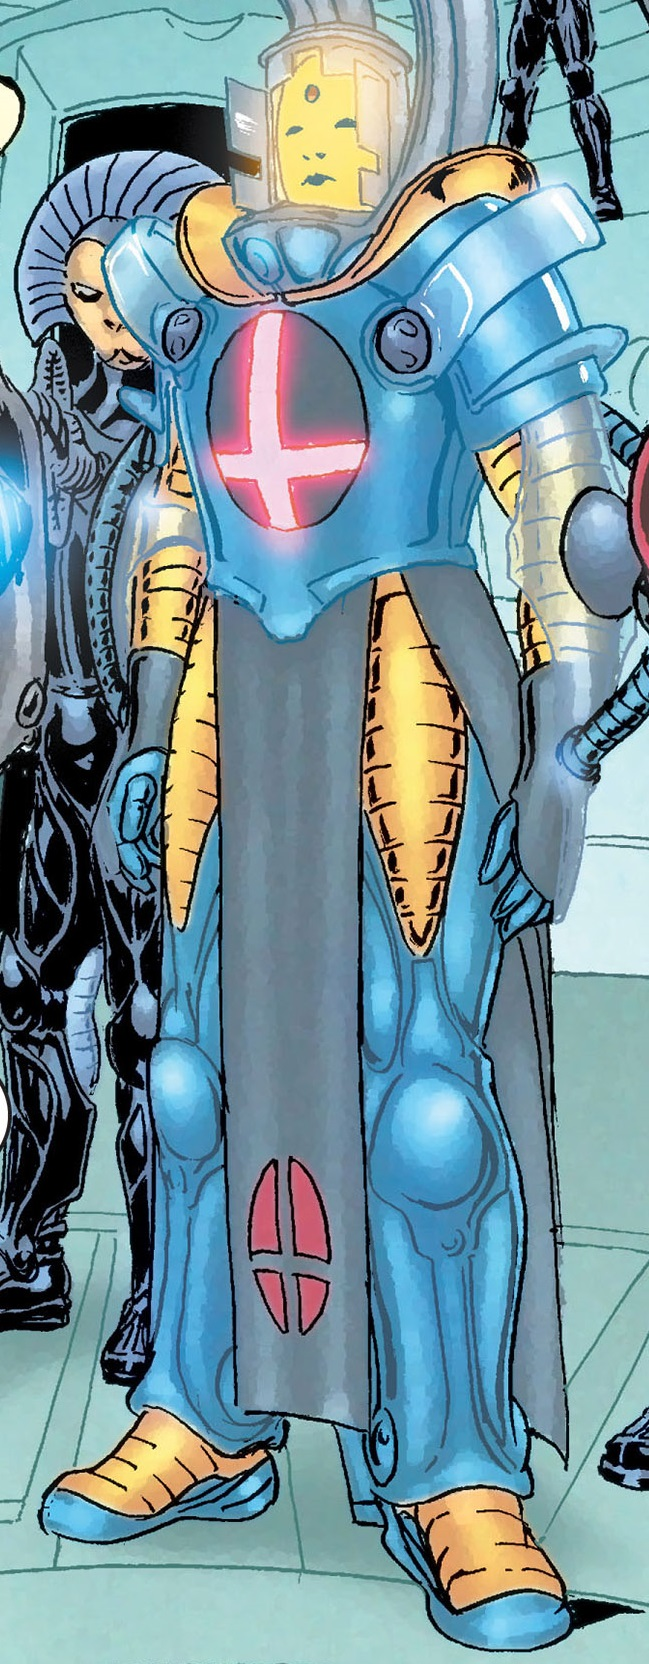 G-Type (Earth-616)/Gallery